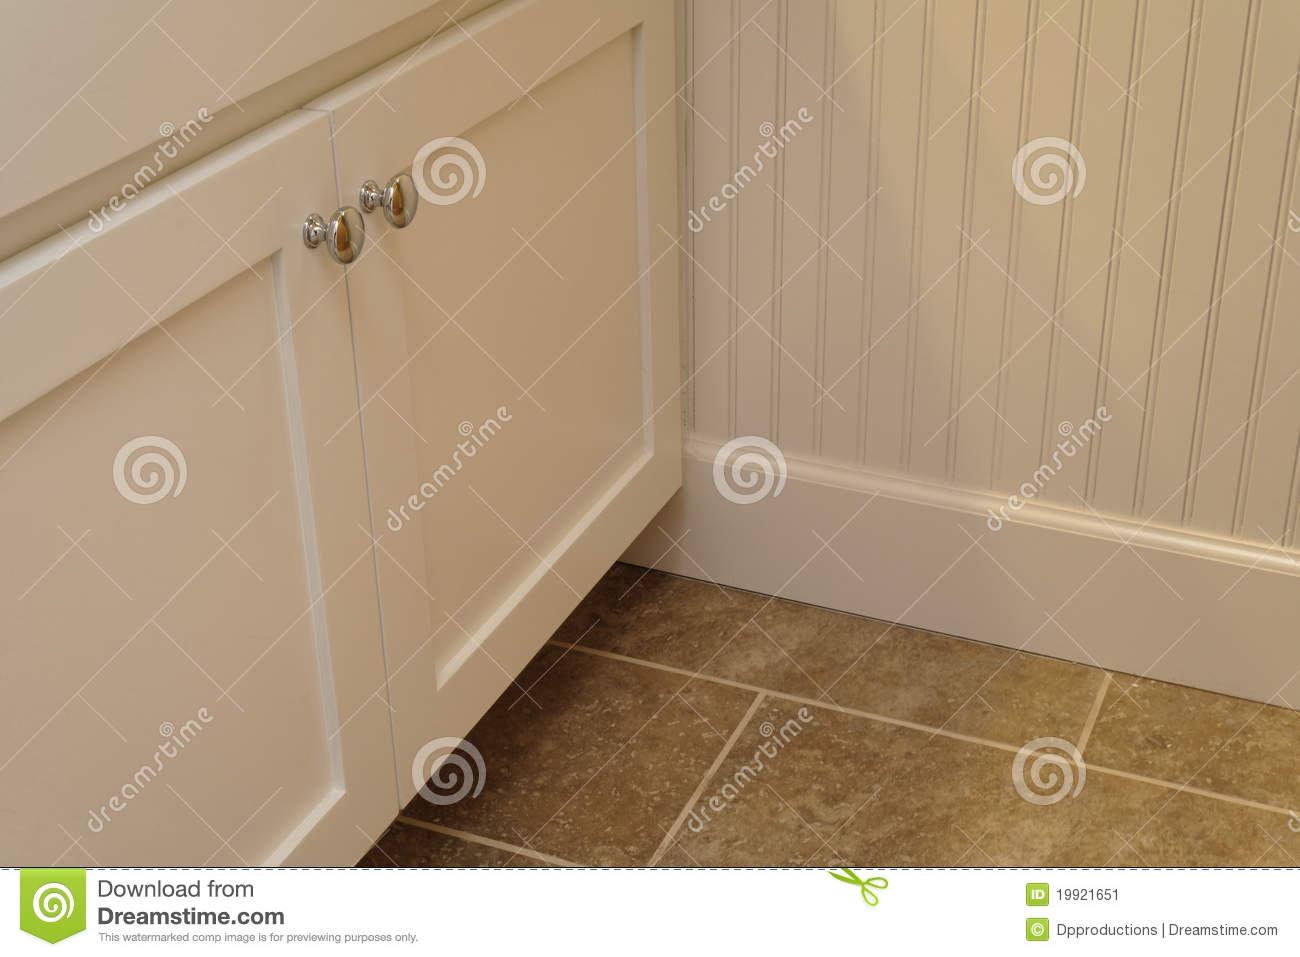 Wainscoting And Cabinets Stock Image Image Of Cabinet 19921651